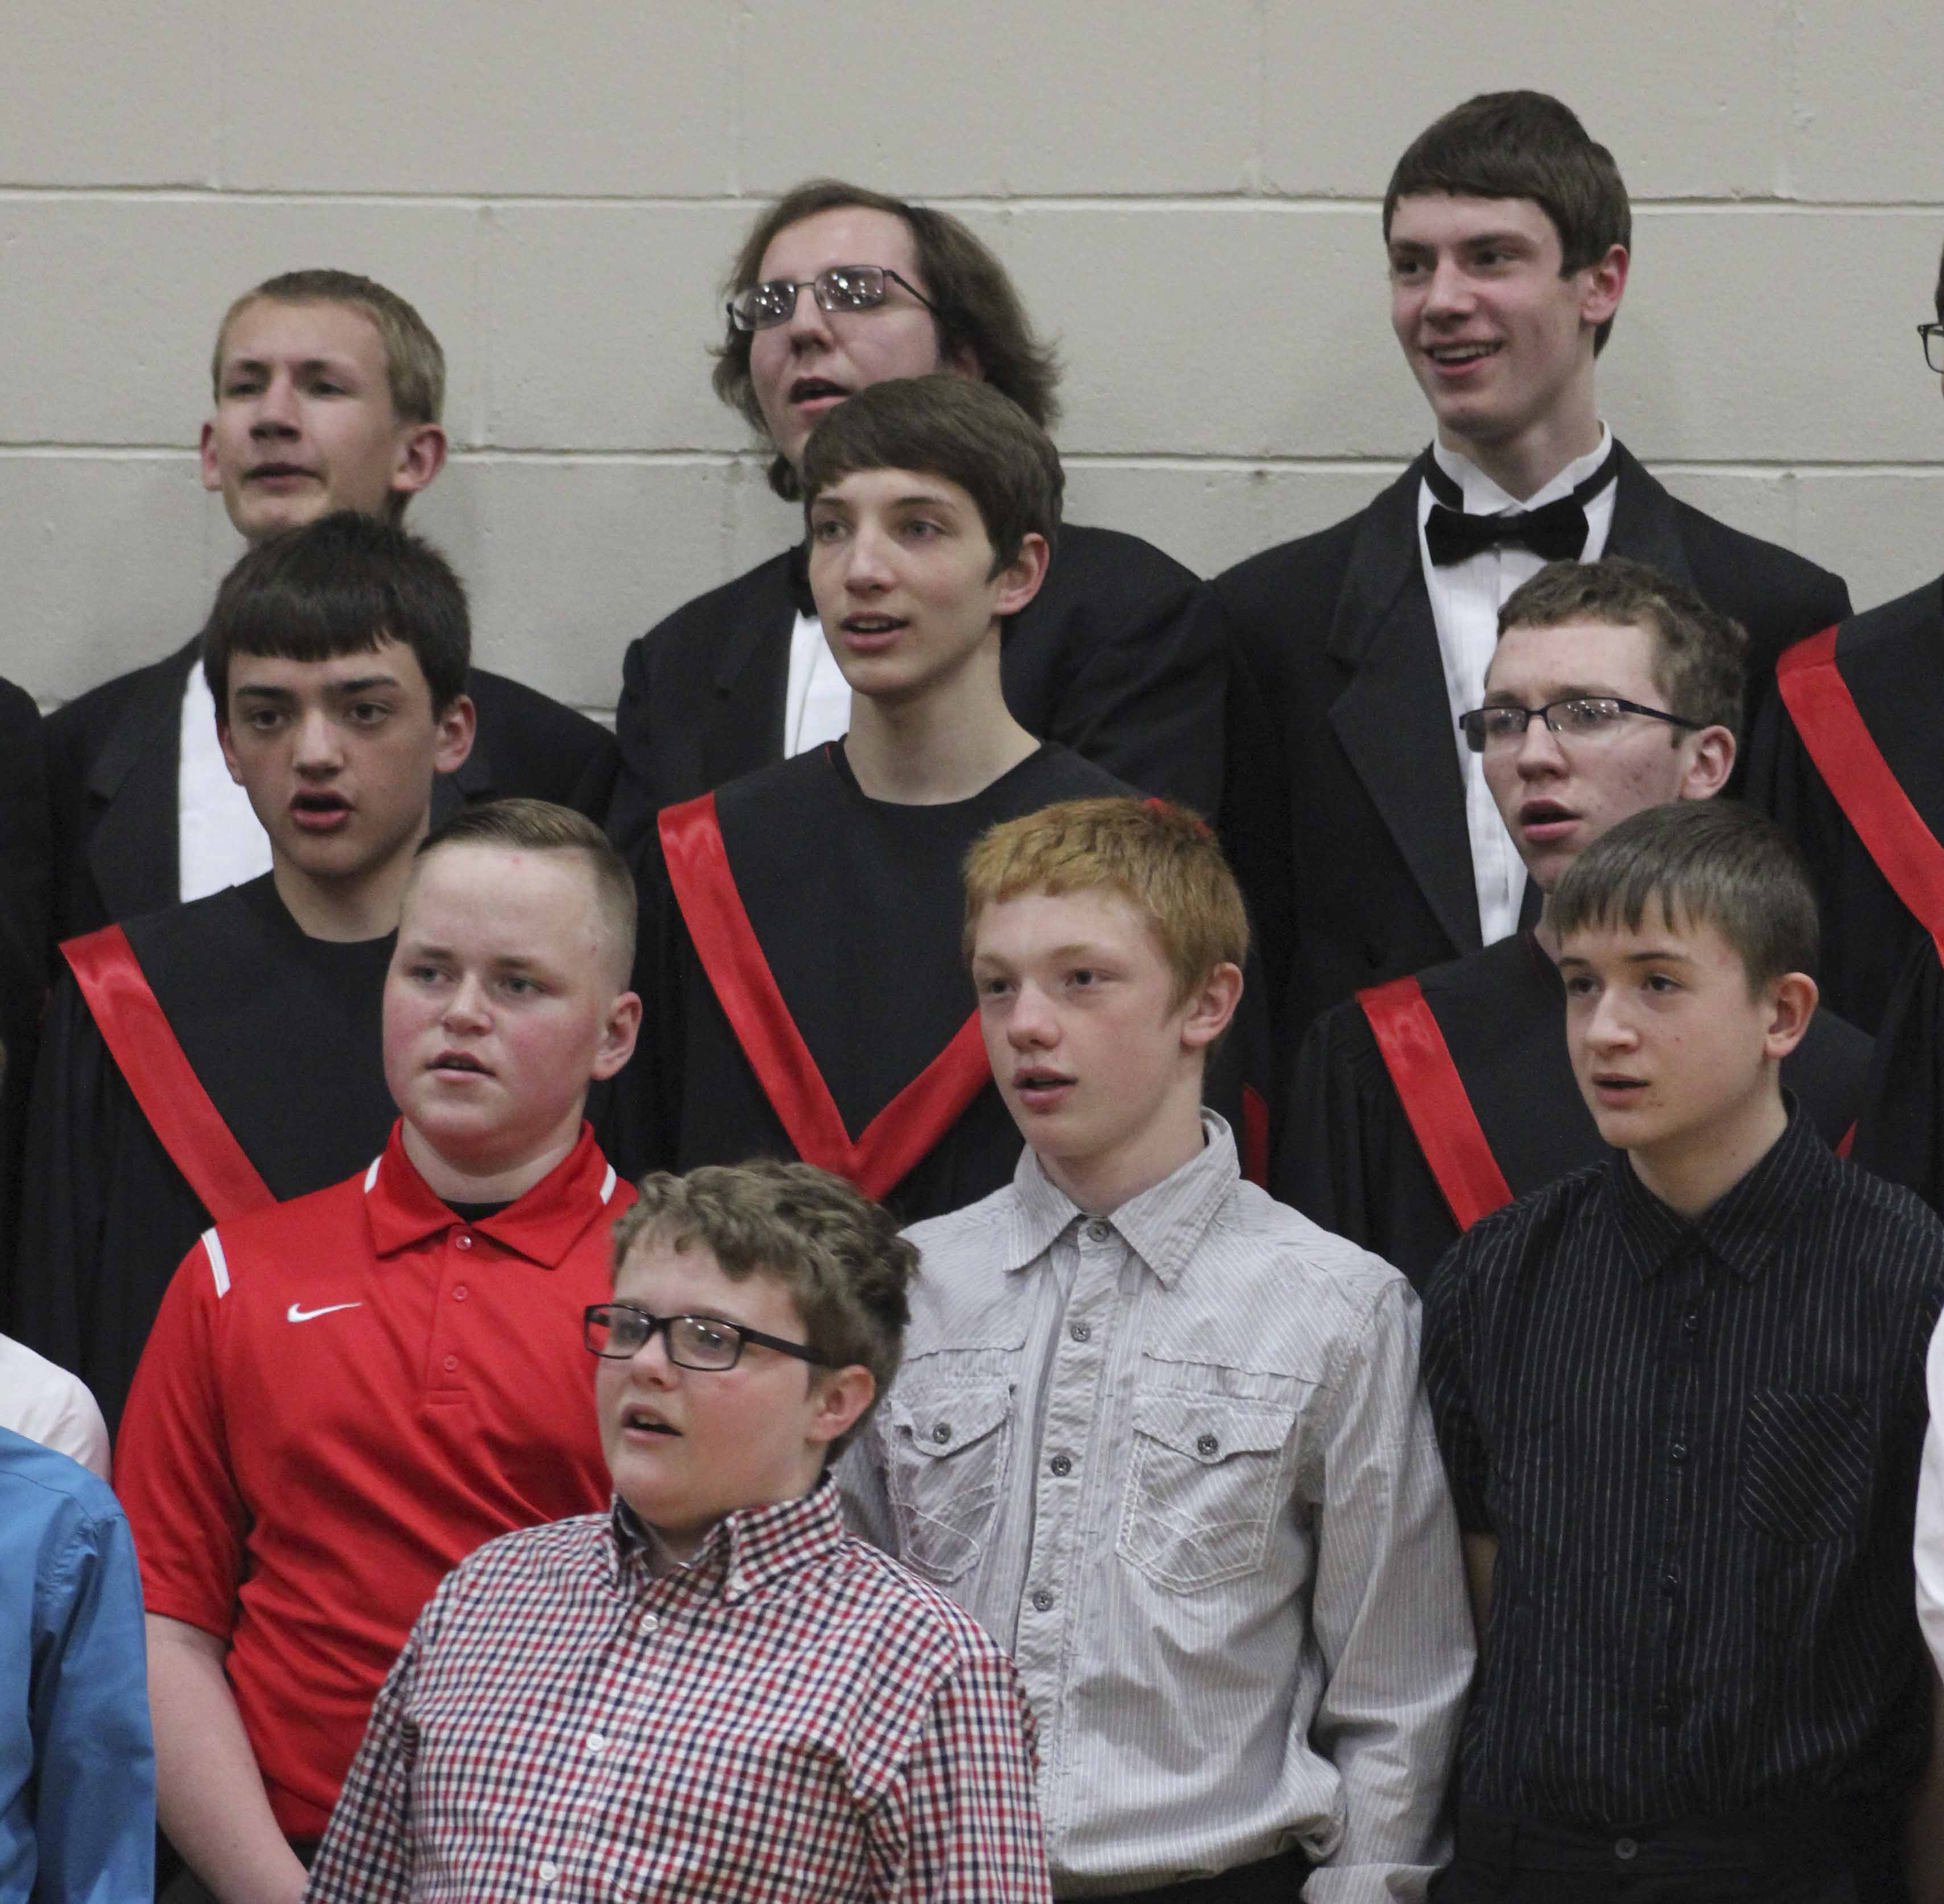 High school and middle school students sing together during the 7th-12th Grade All-Vocal Concert March 20 in the Monticello High School gym. Performers include, first row: Brenden Dirks. Second row from left: Lucas Bartachek, Brenden Koppes and Jordan Reth. Third row: Zach Chapman, Caden Ungs and Gabe Wright. Third row: Ryan Oswald, Tyler Sproston and Alan Janssen. (Photos by Pete Temple)